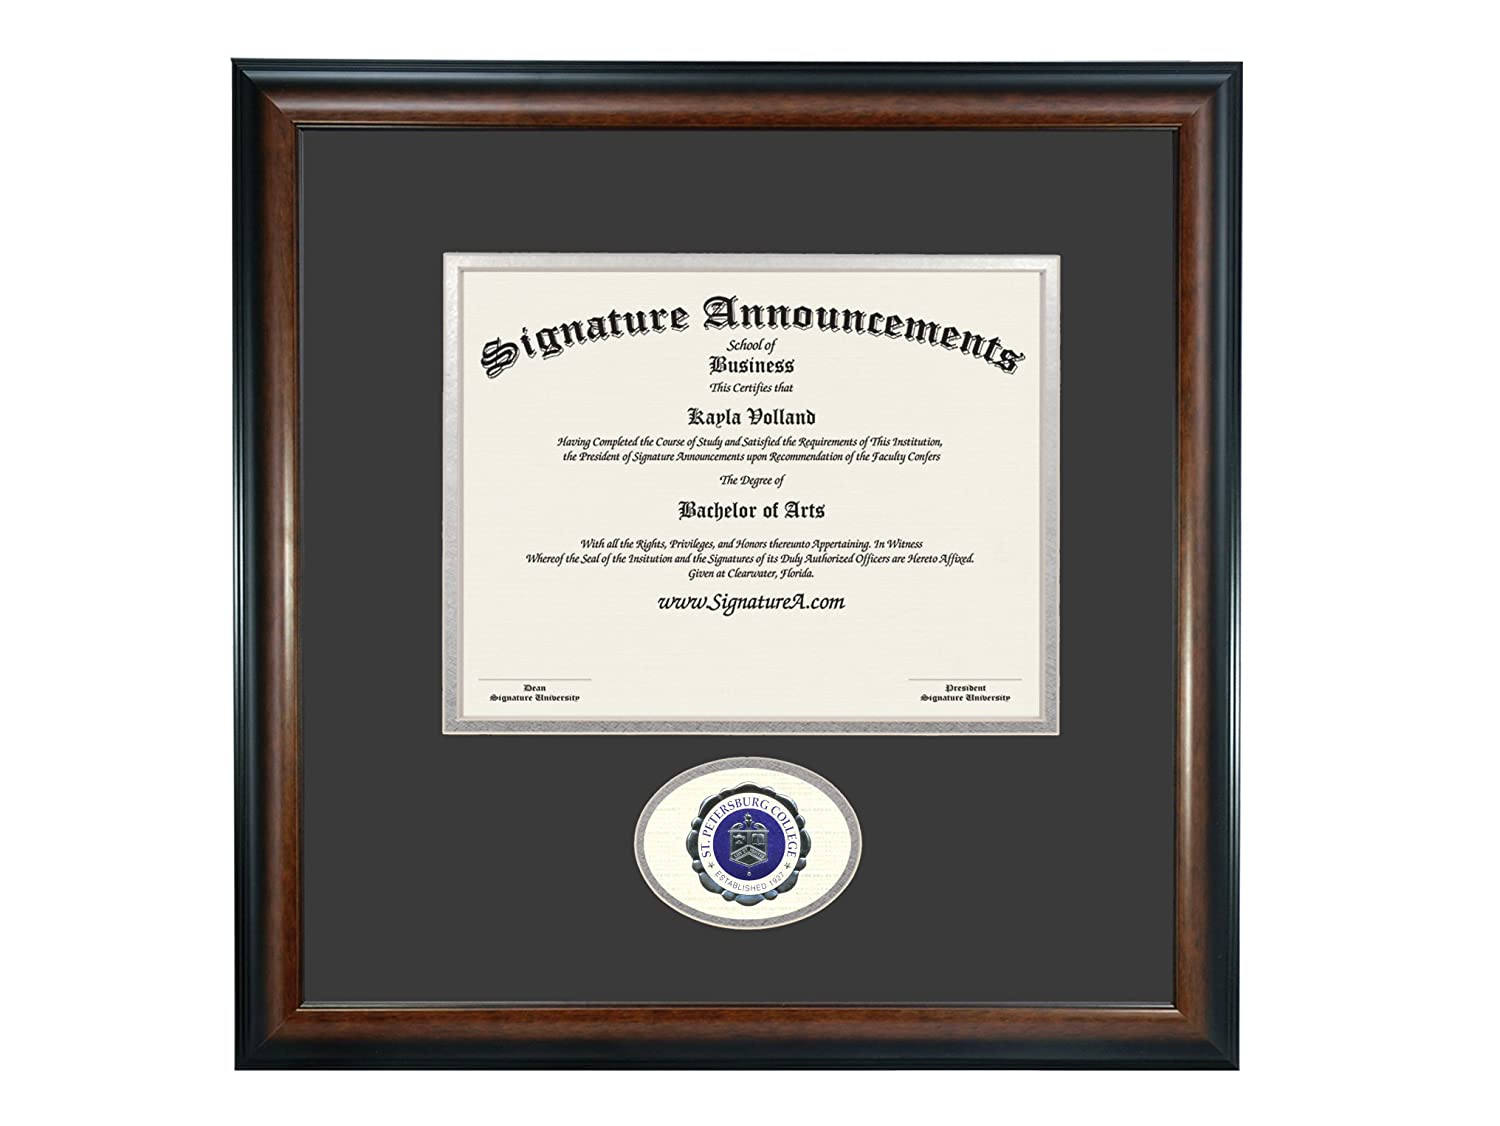 Professional//Doctor Sculpted Foil Seal Graduation Diploma Frame 16 x 16 Matte Mahogany Signature Announcements St-Petersburg-College Undergraduate